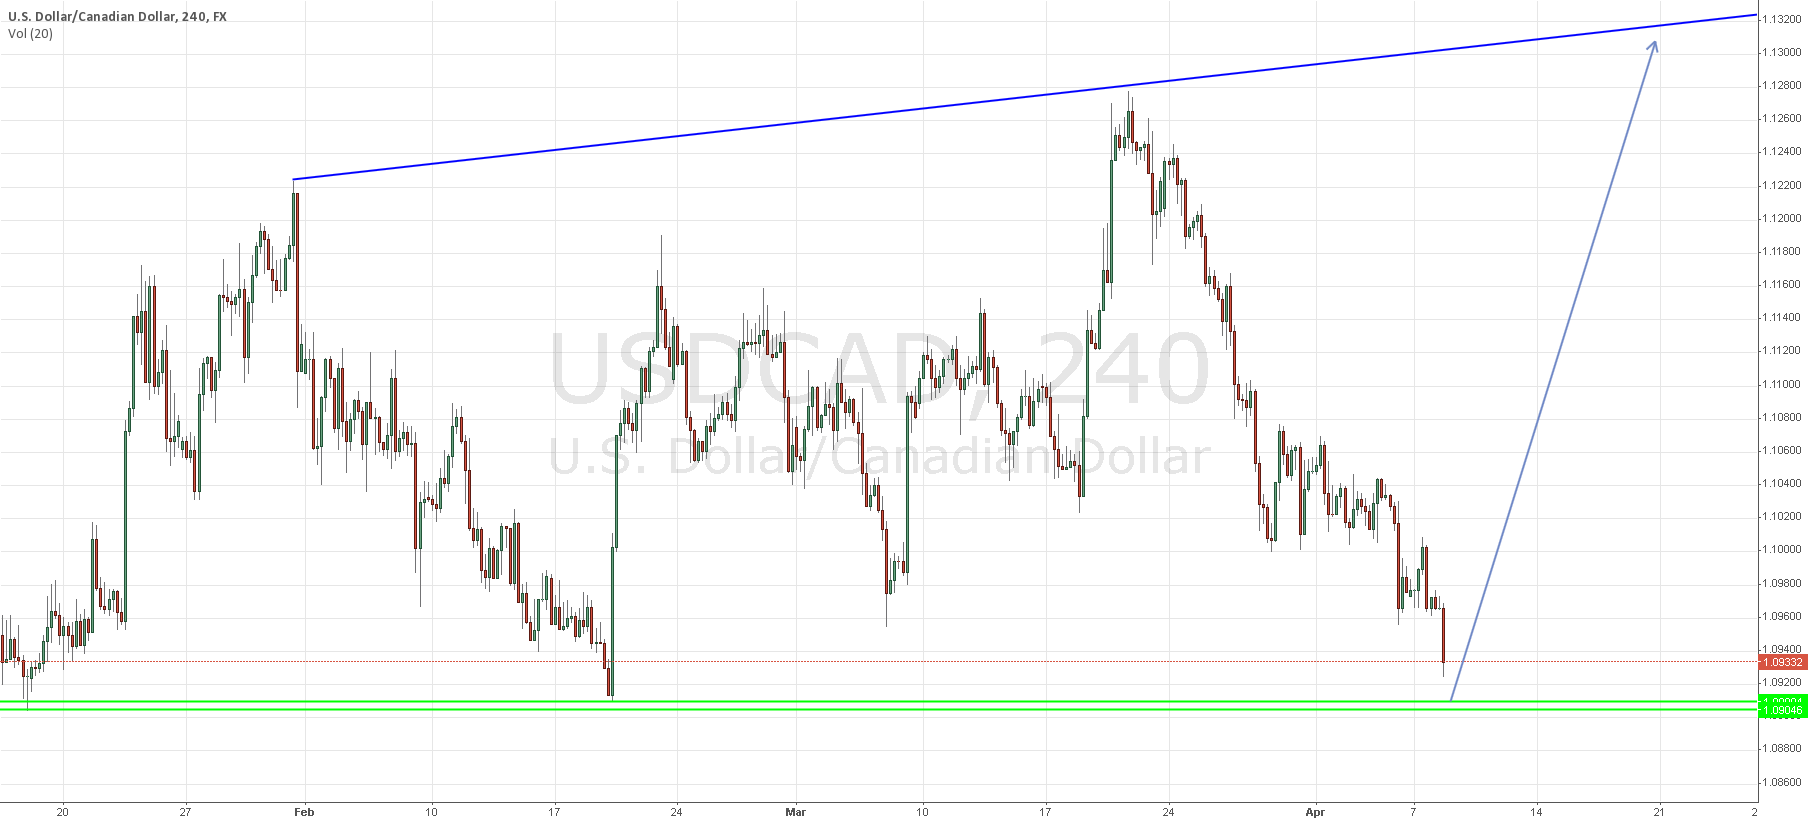 Long USD/CAD around low 1.09XX region